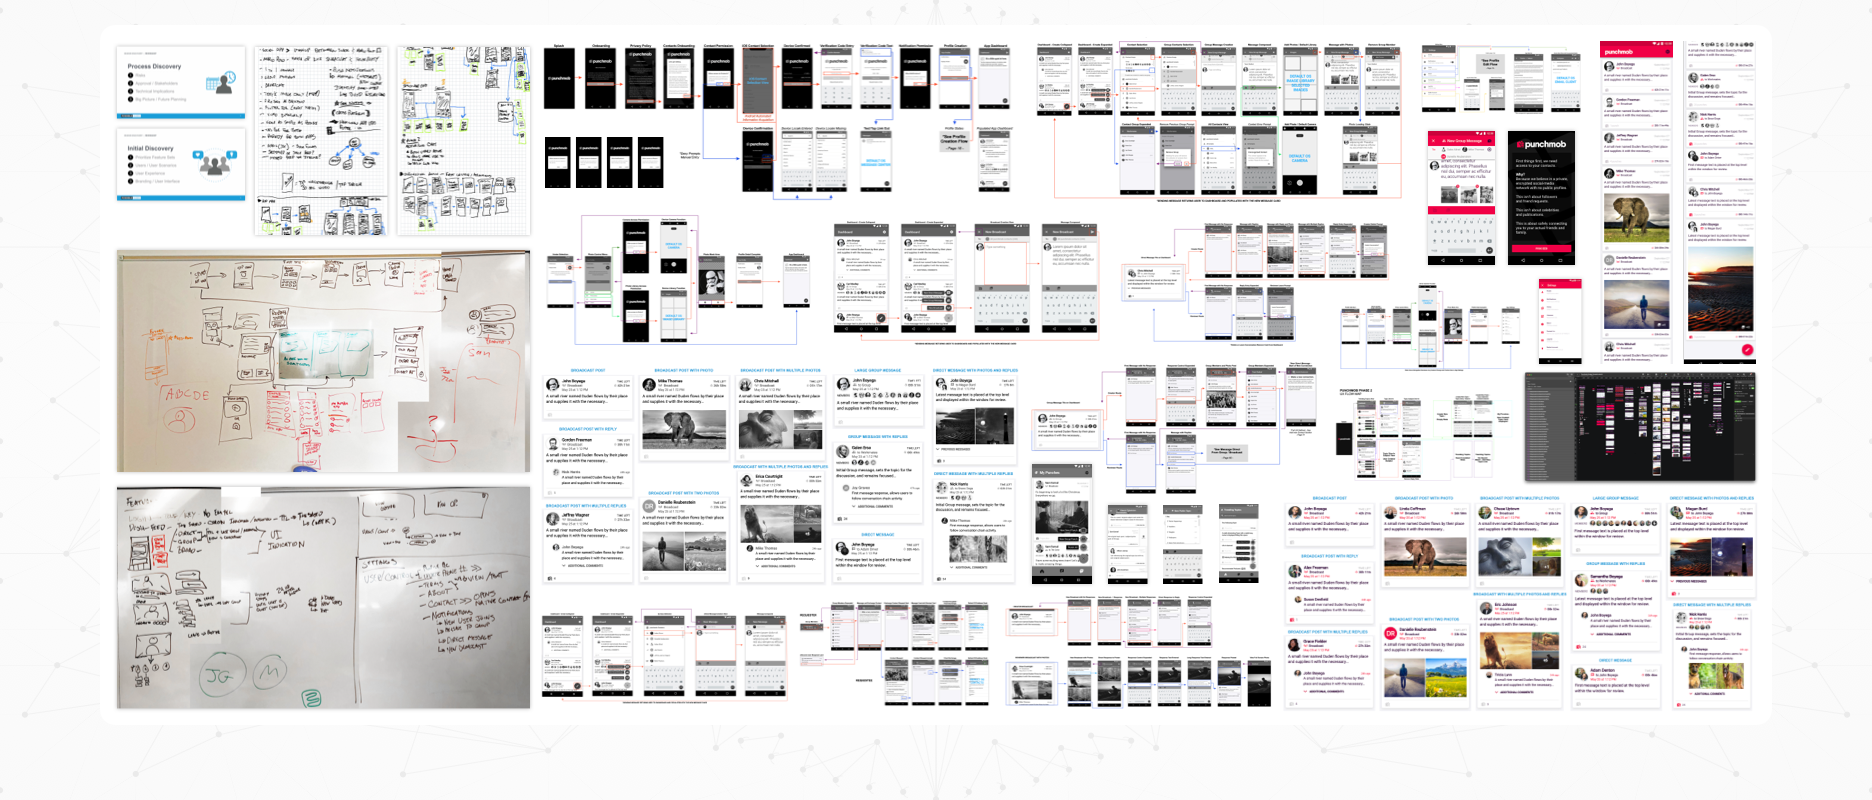 Punchmob - Case Study Image - Workshop and App Creation